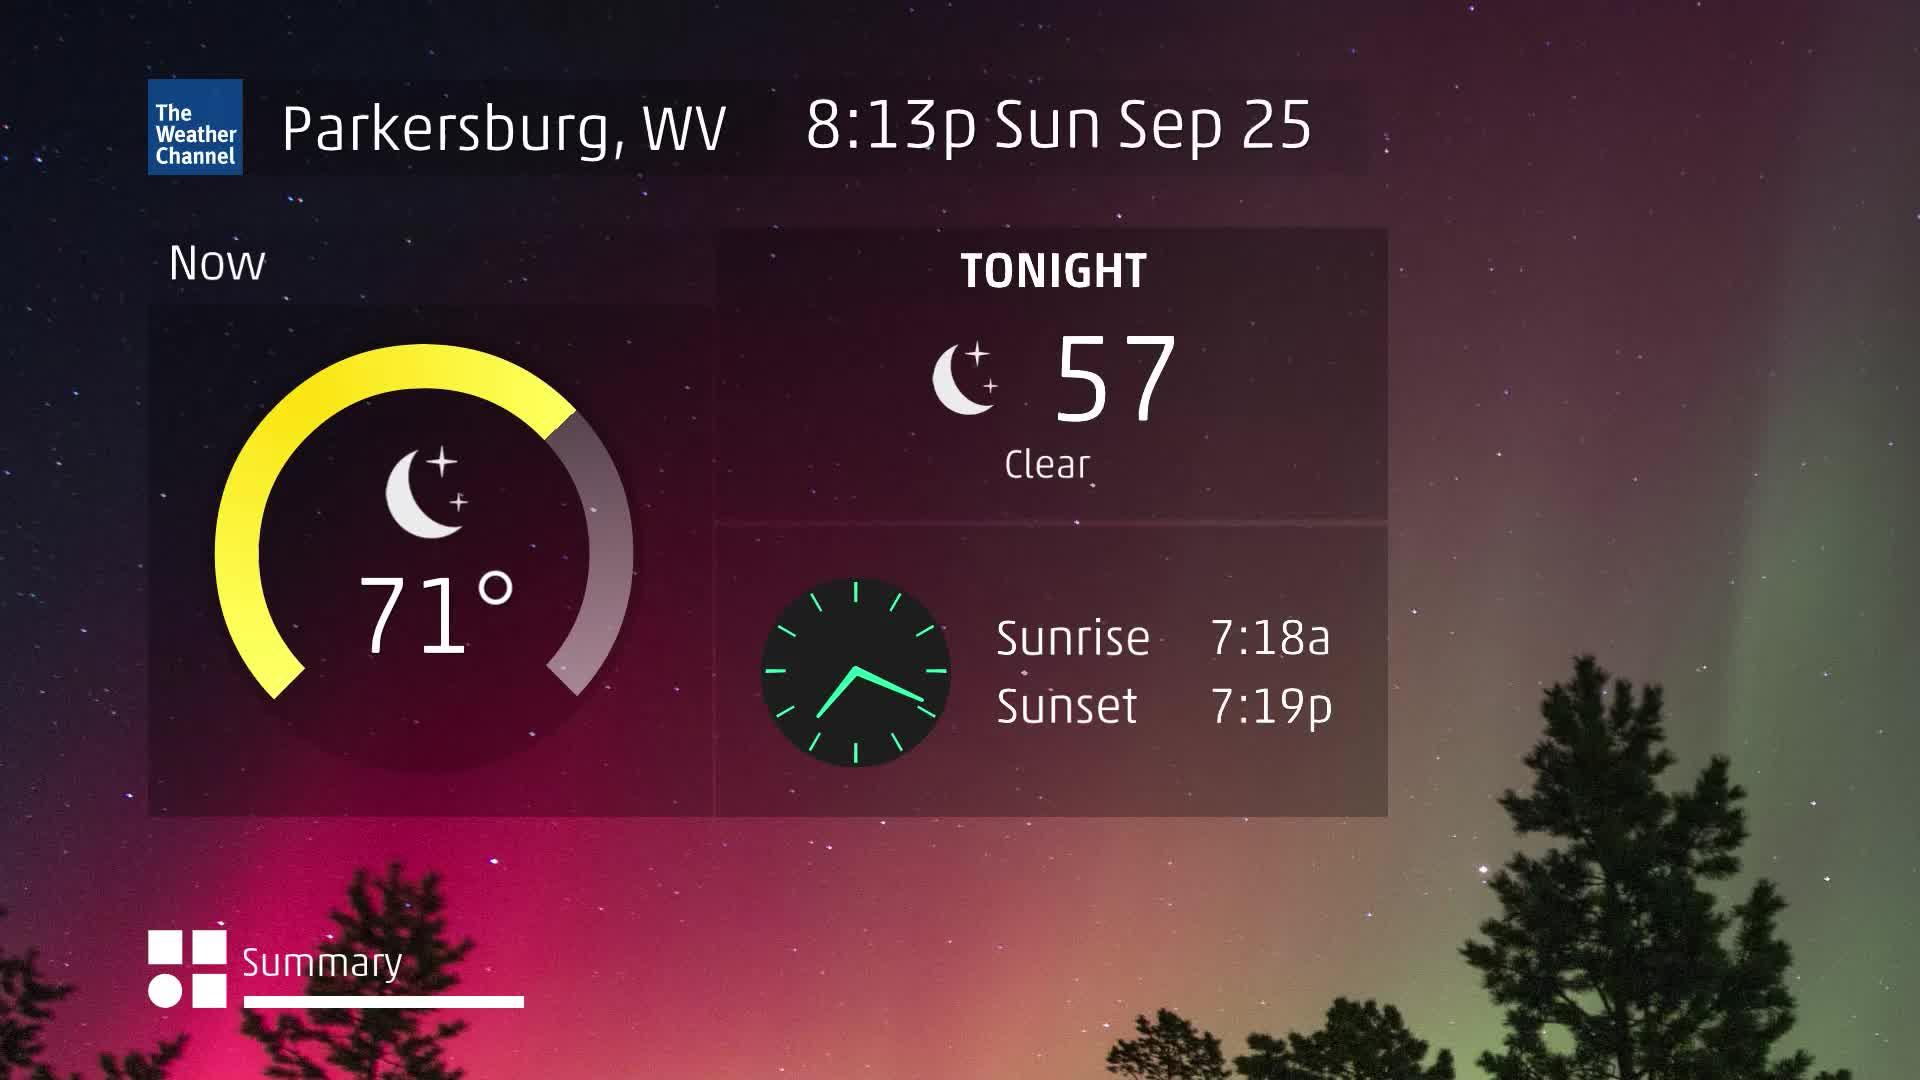 Parkersburg, WV 60 Second Forecast